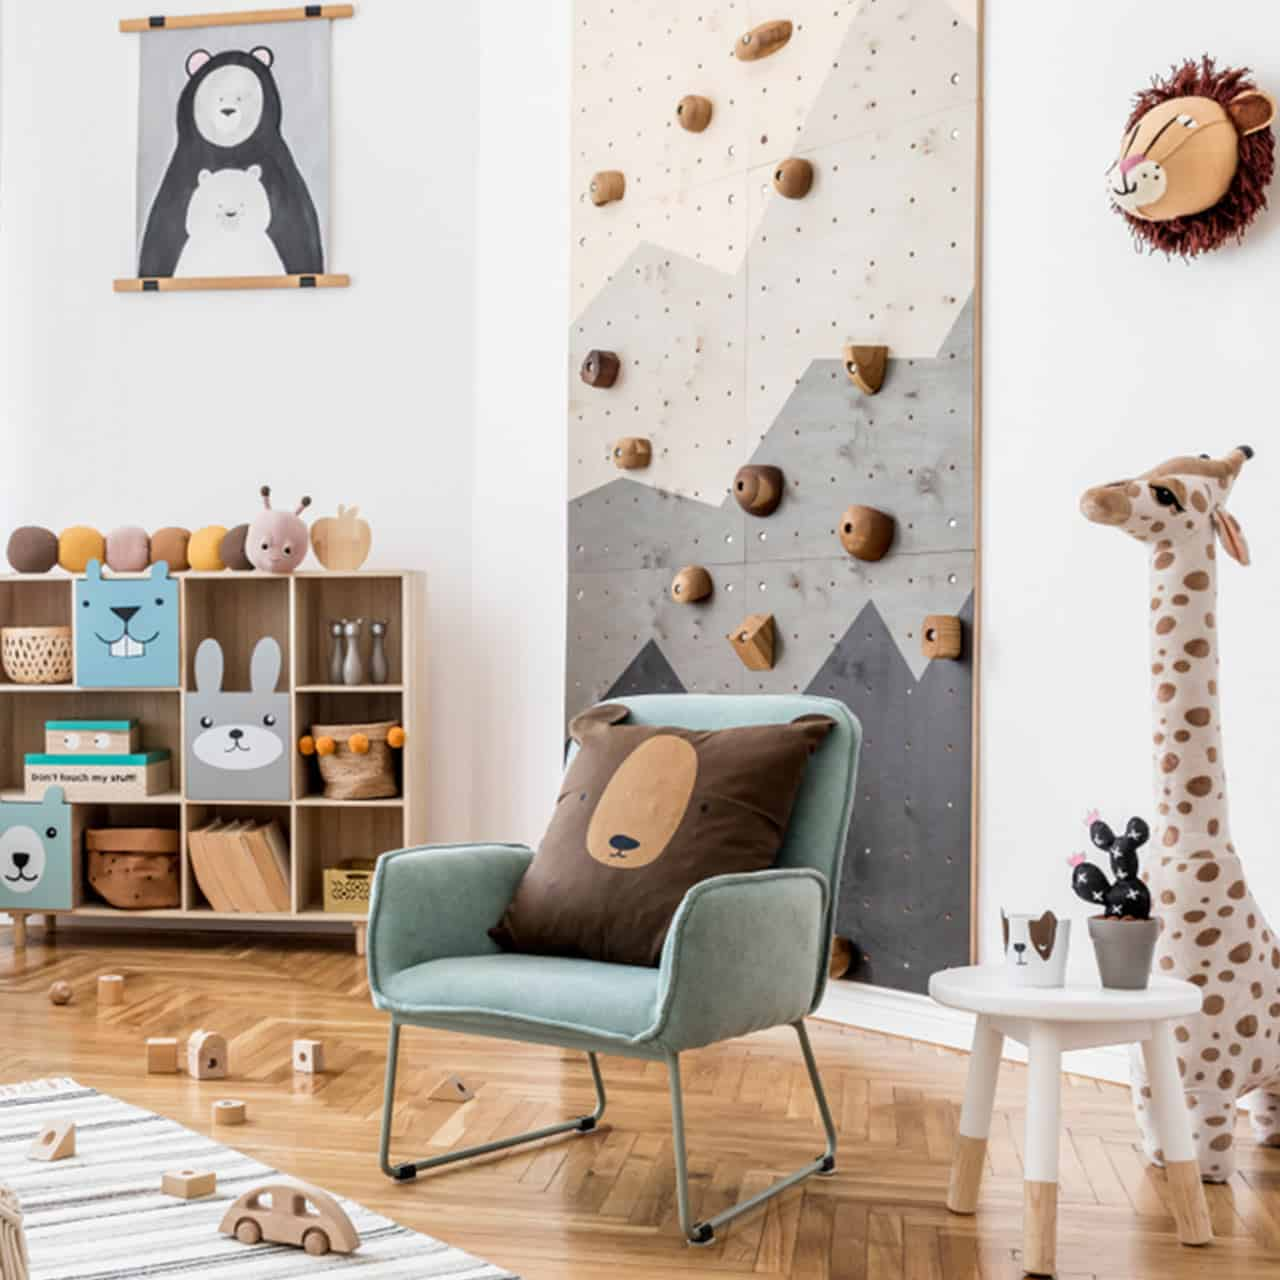 Create Activity Spaces for Kids Bedroom